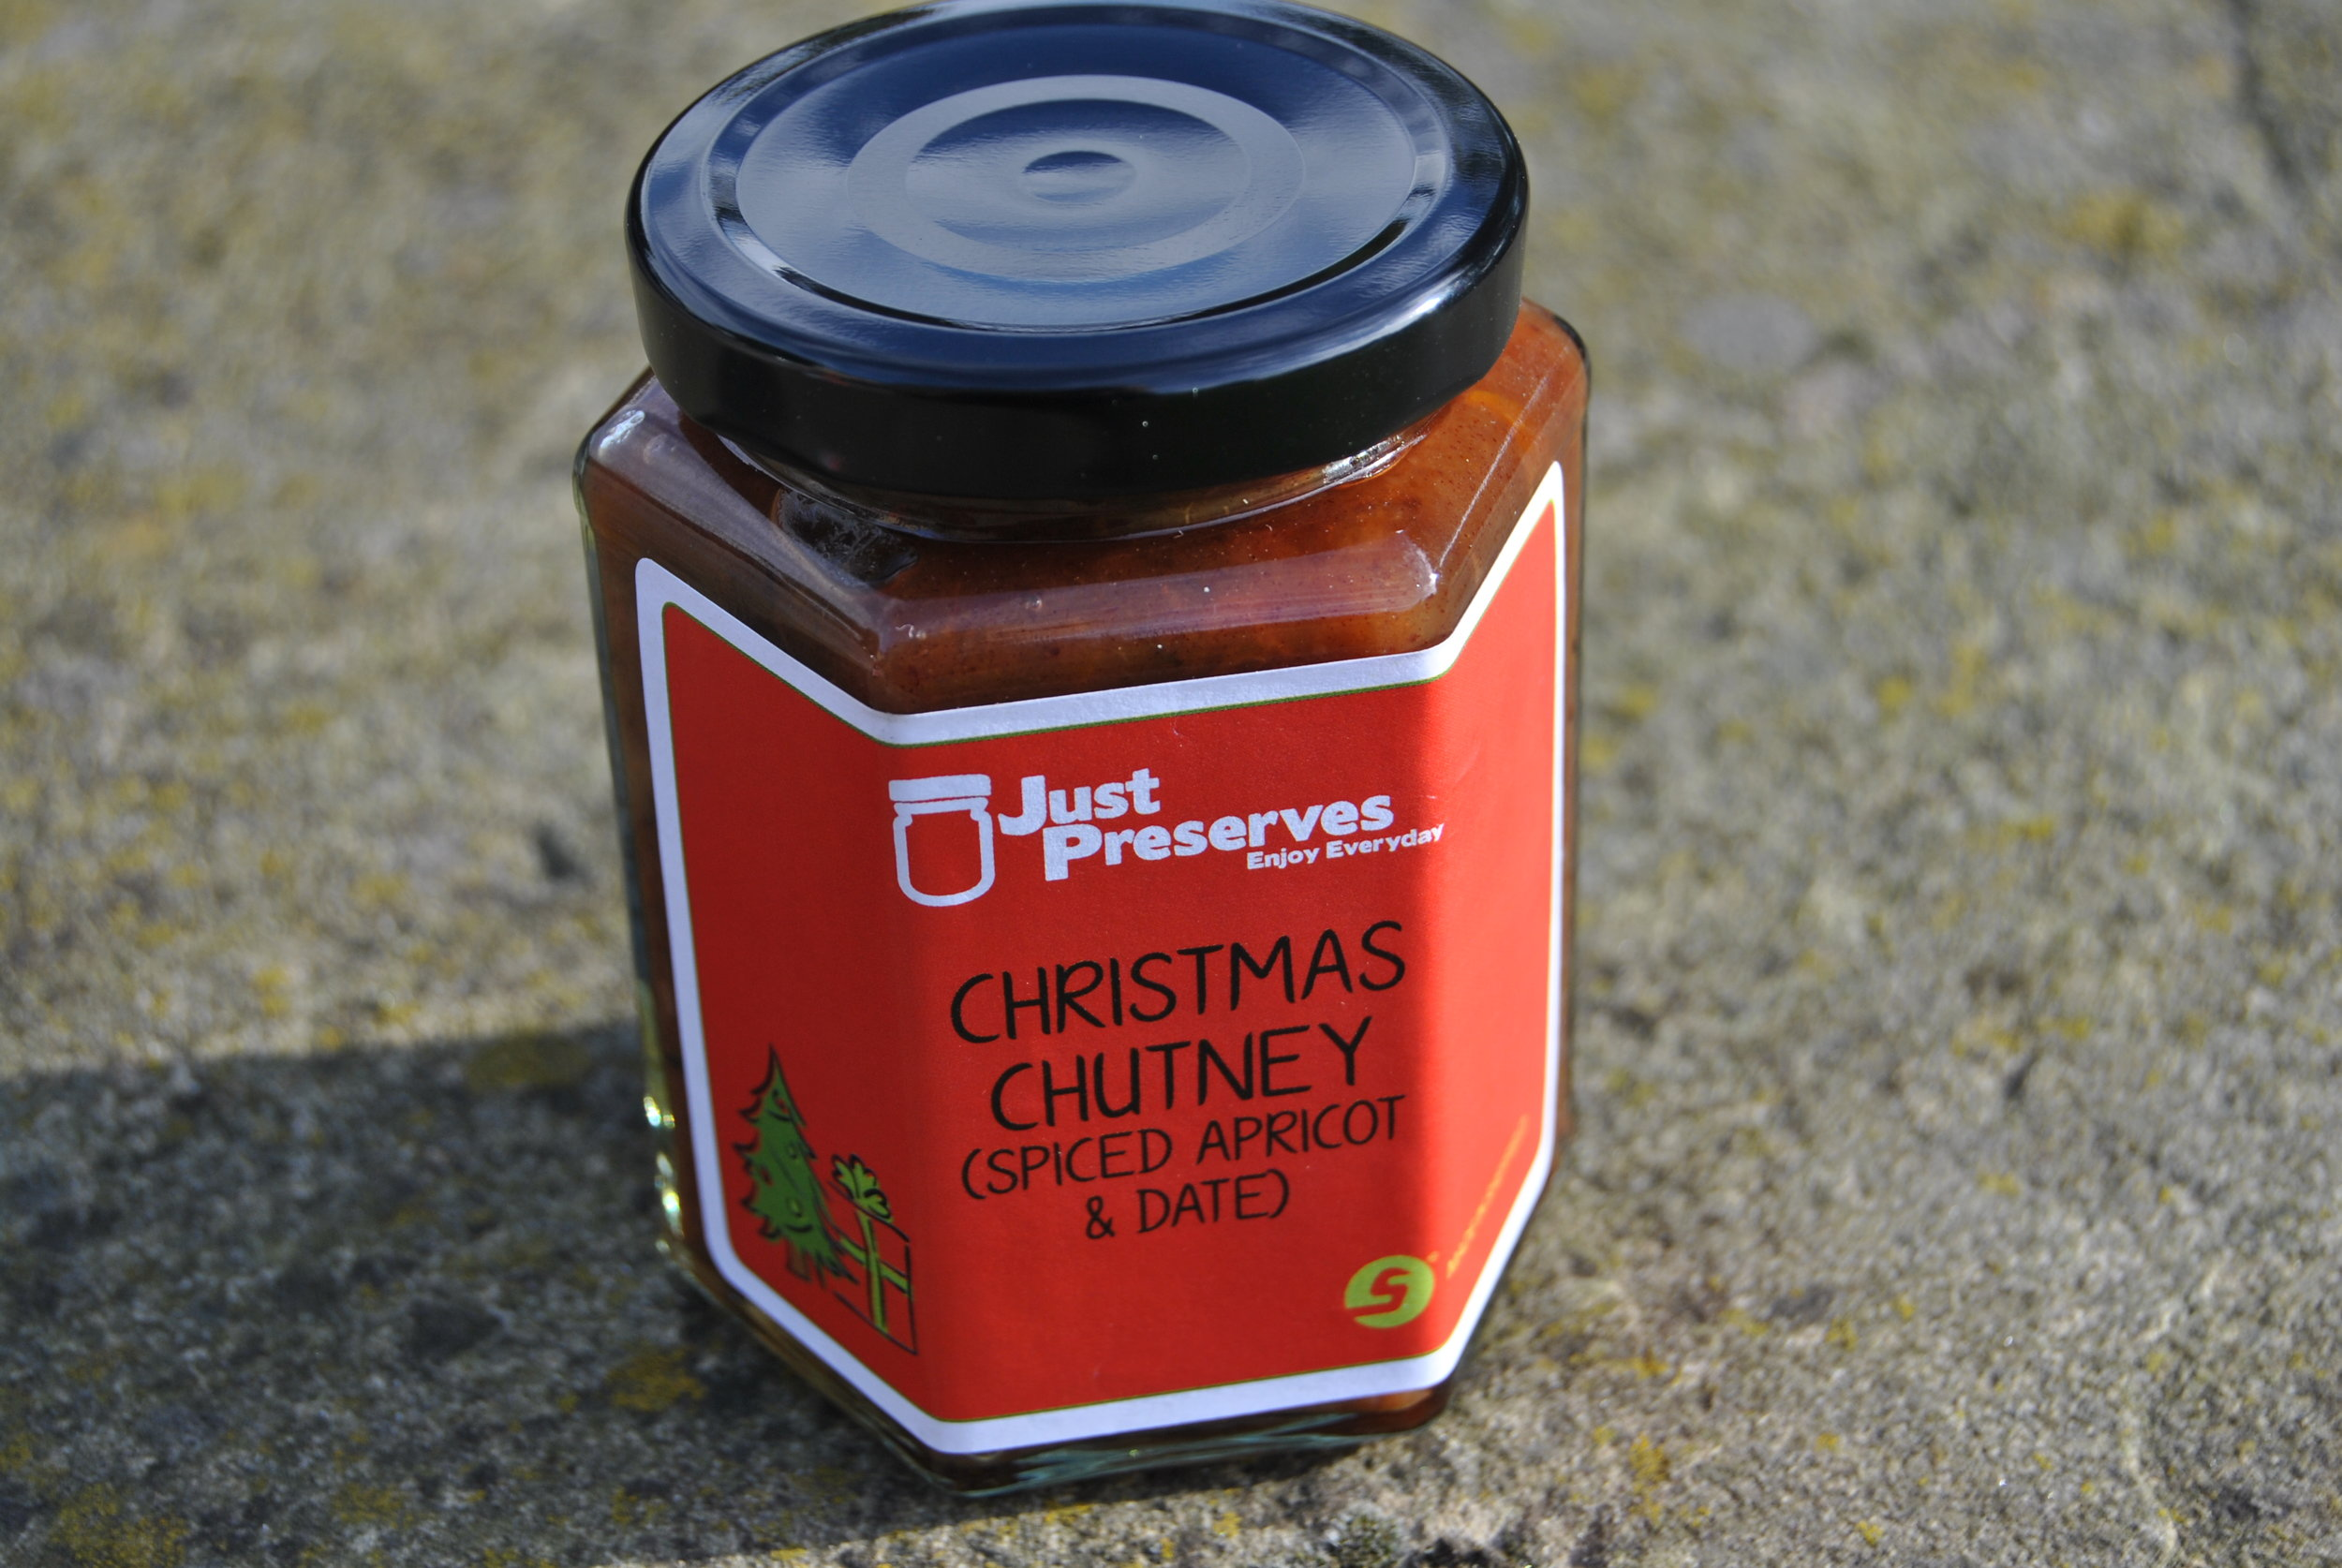 We have added a lovely Christmas Chutney made by Matthew at  Just Preserves  based in Chippinghouse Road in Sheffield.  Matthew shares the same ethos as us when it comes to the care with which he sources his ingredients.